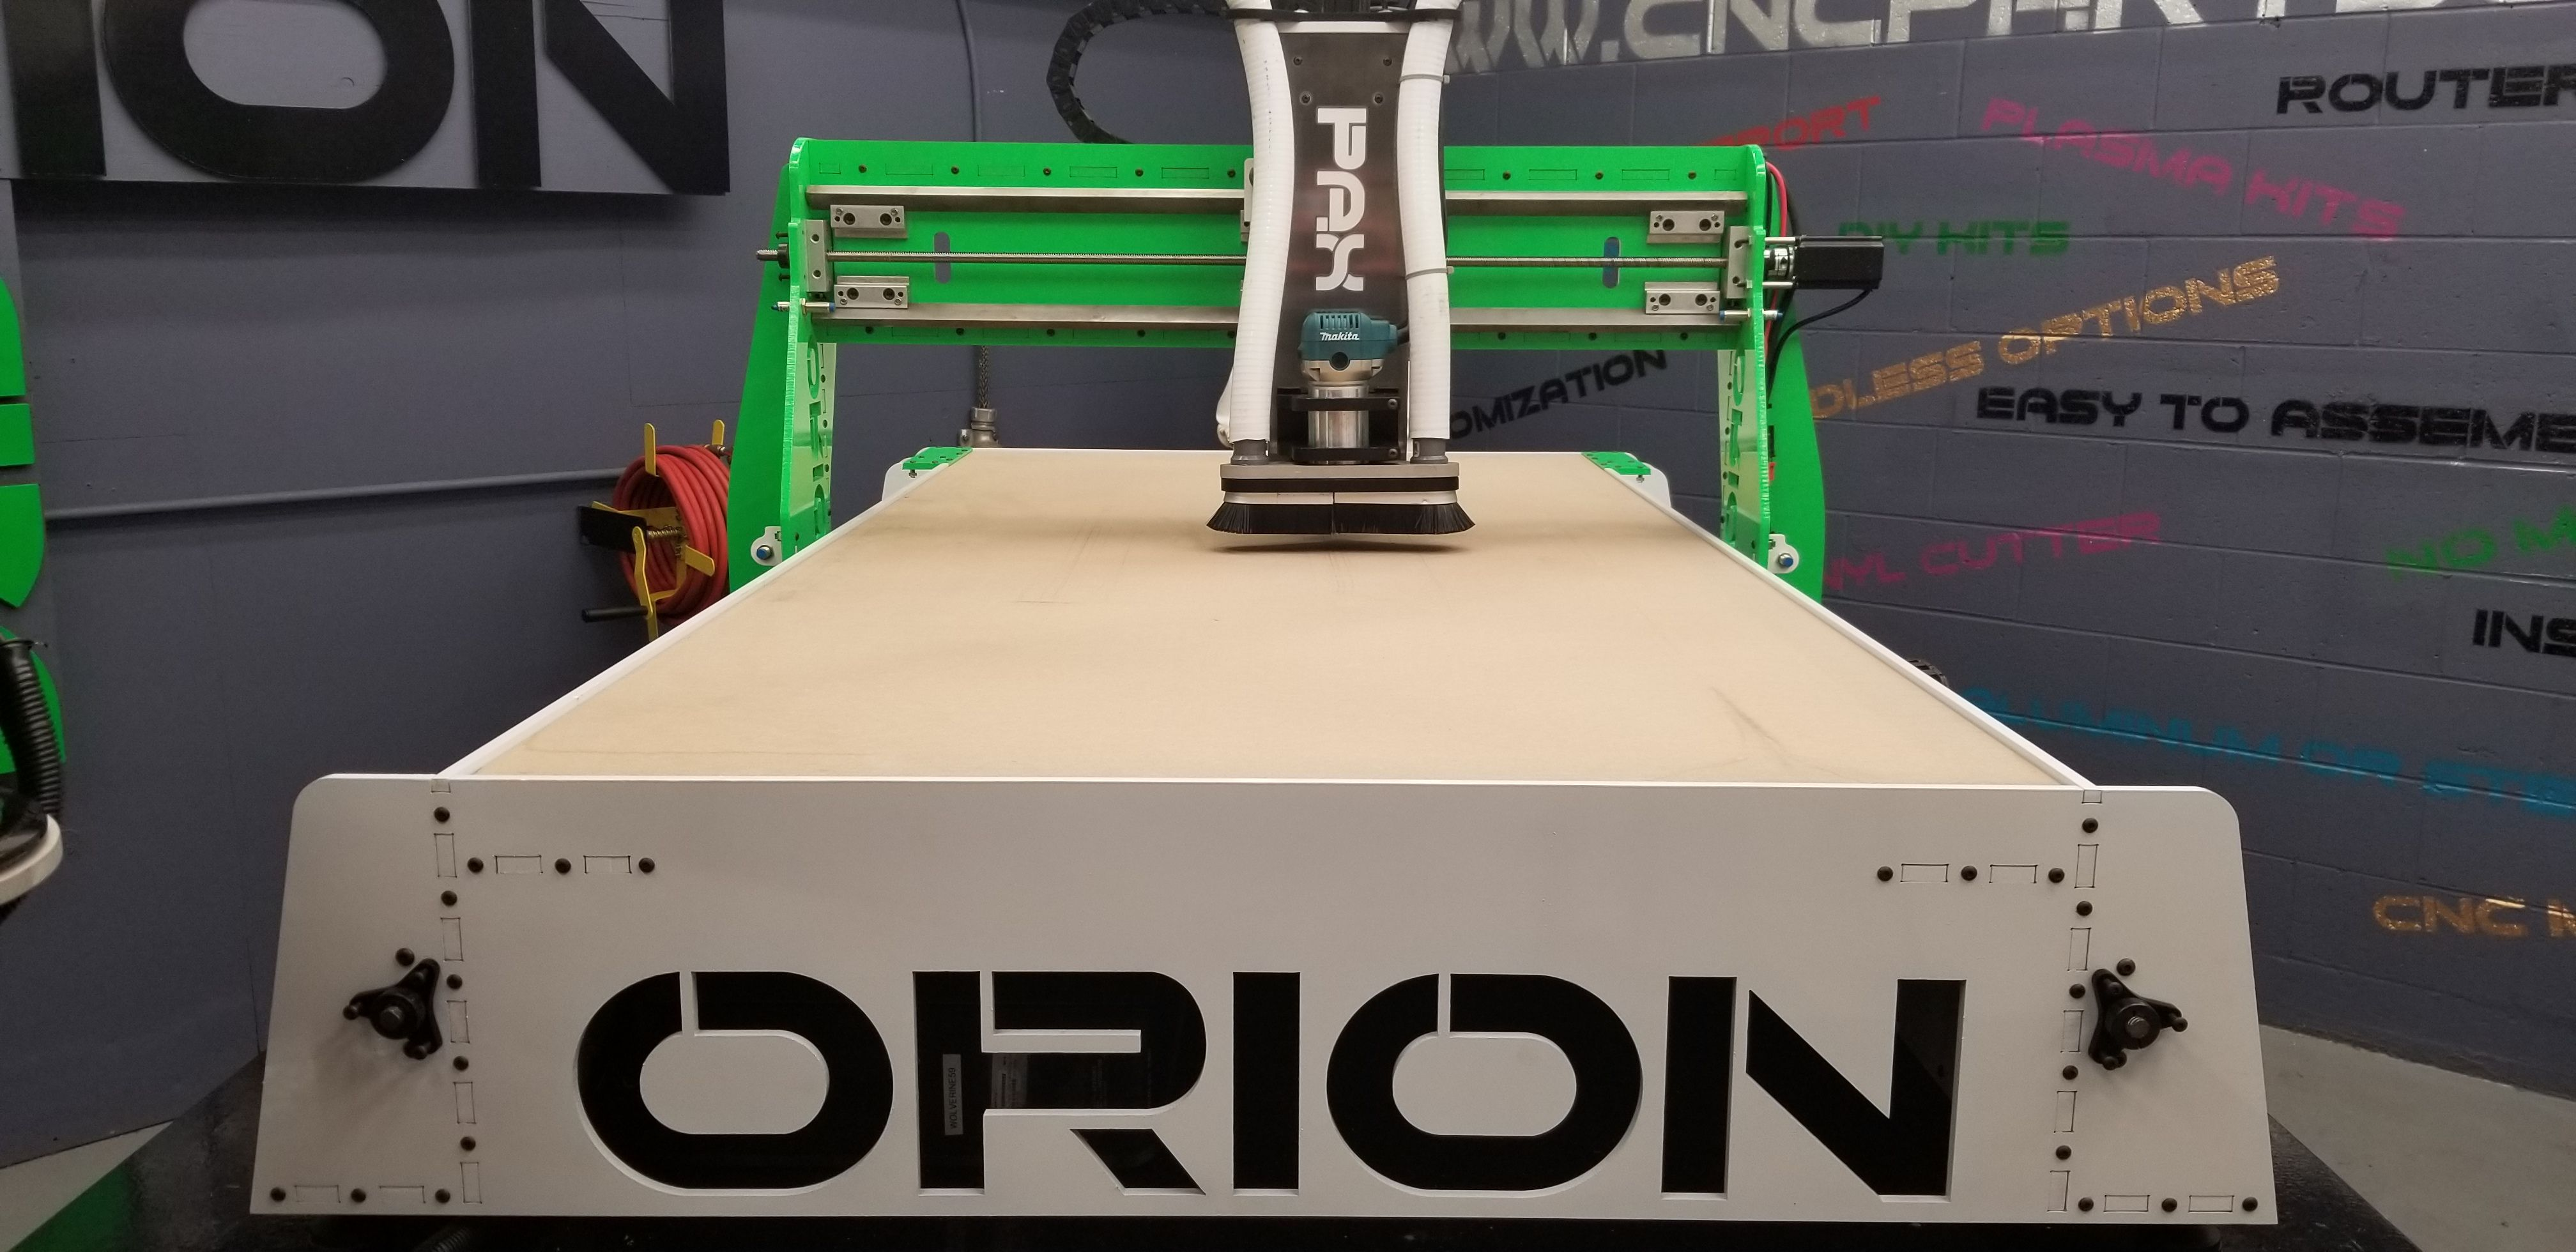 School discounts available to FIRST Robotic teams! Cnc